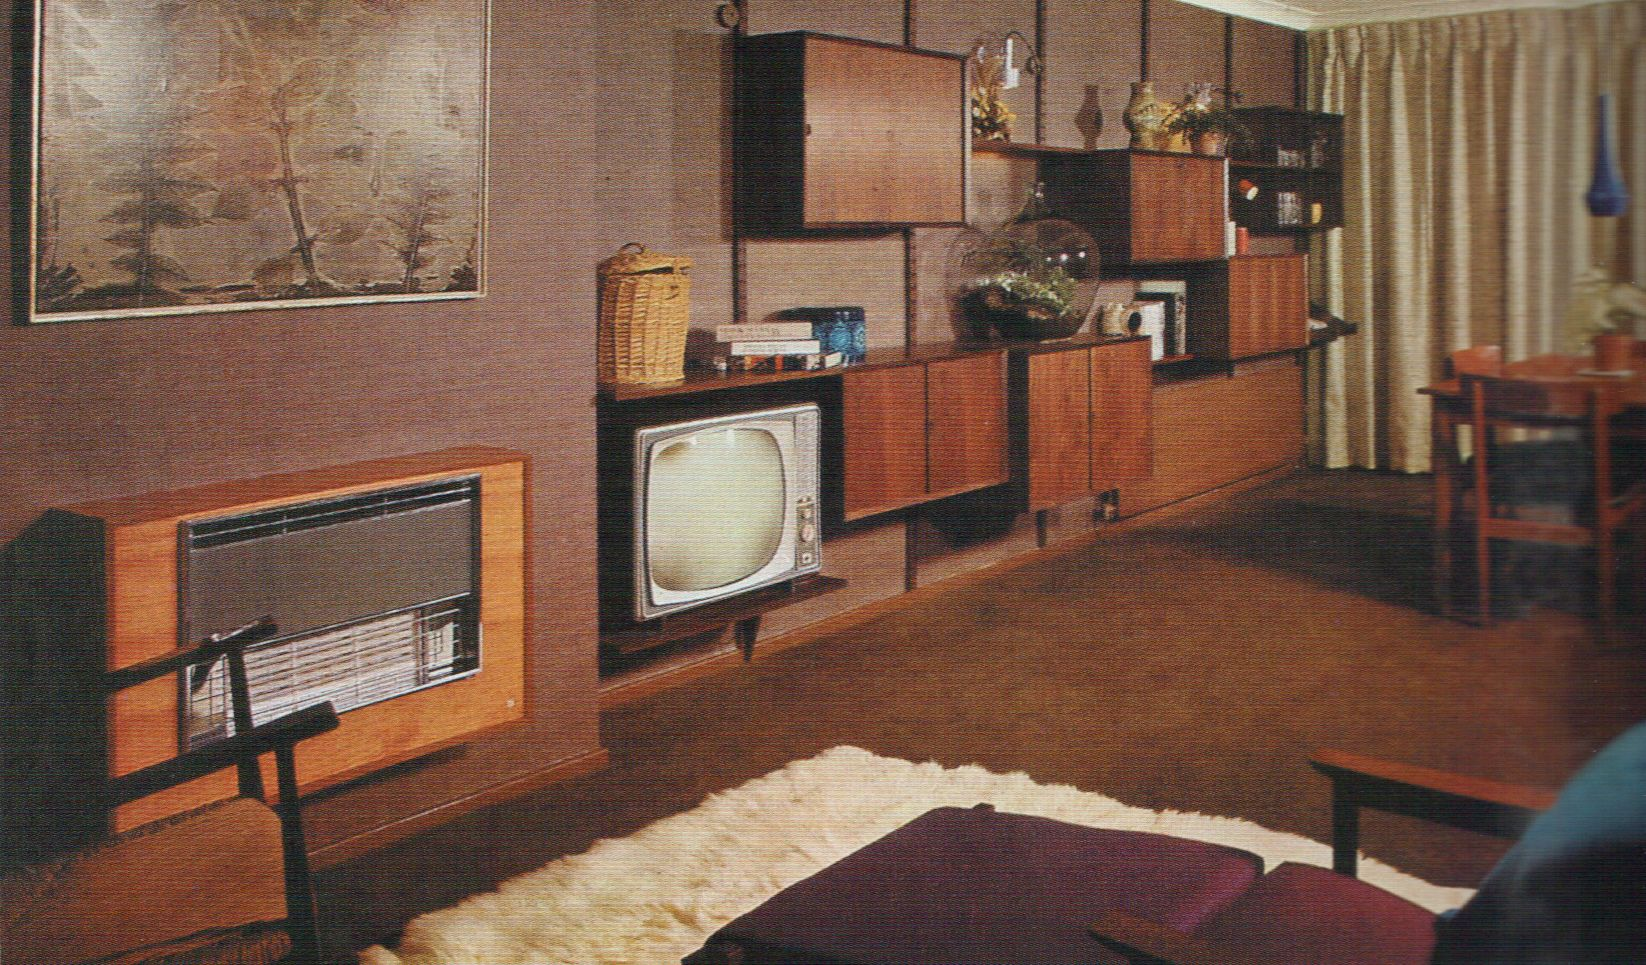 1960s Interior Design Images Of Living Room From The